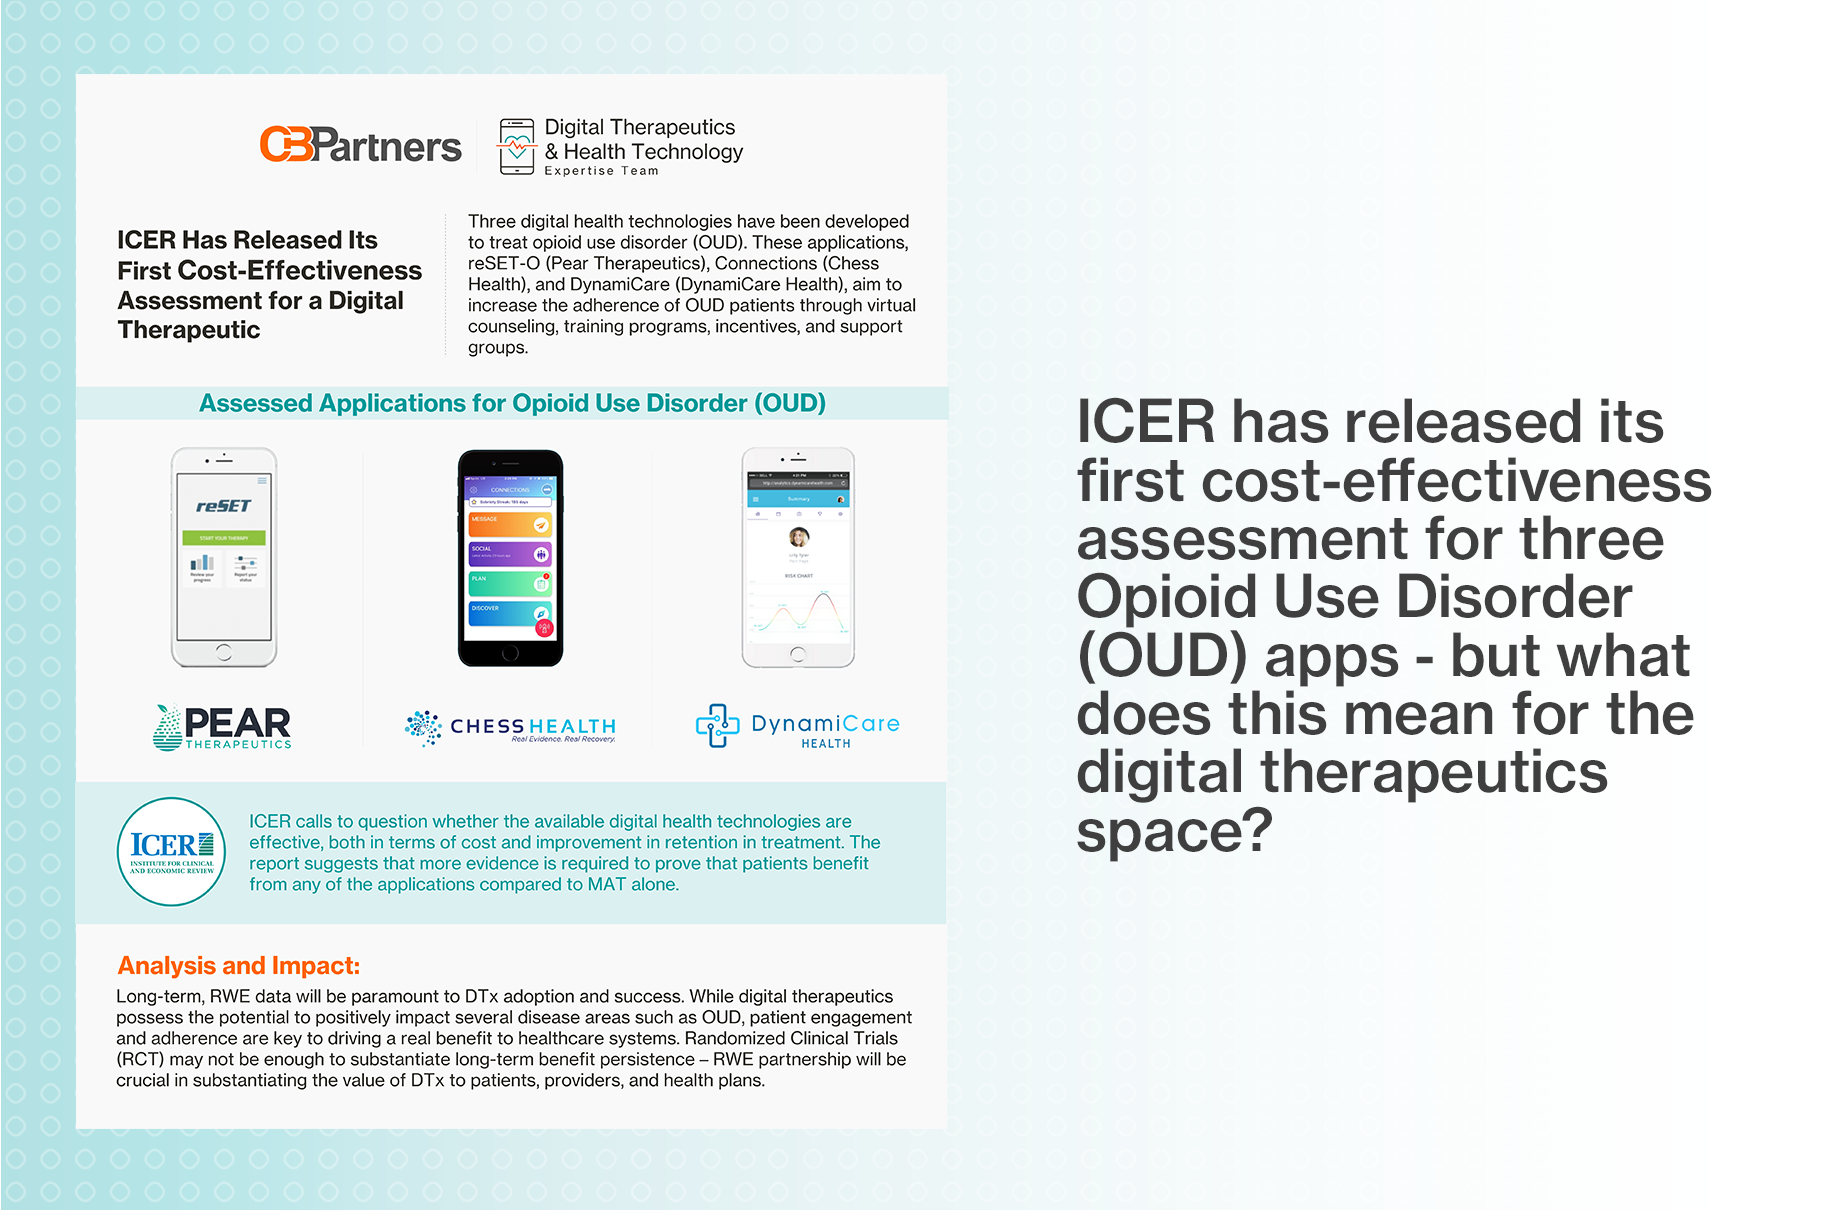 ICER released first cost-effective assessment for digital therapeutic